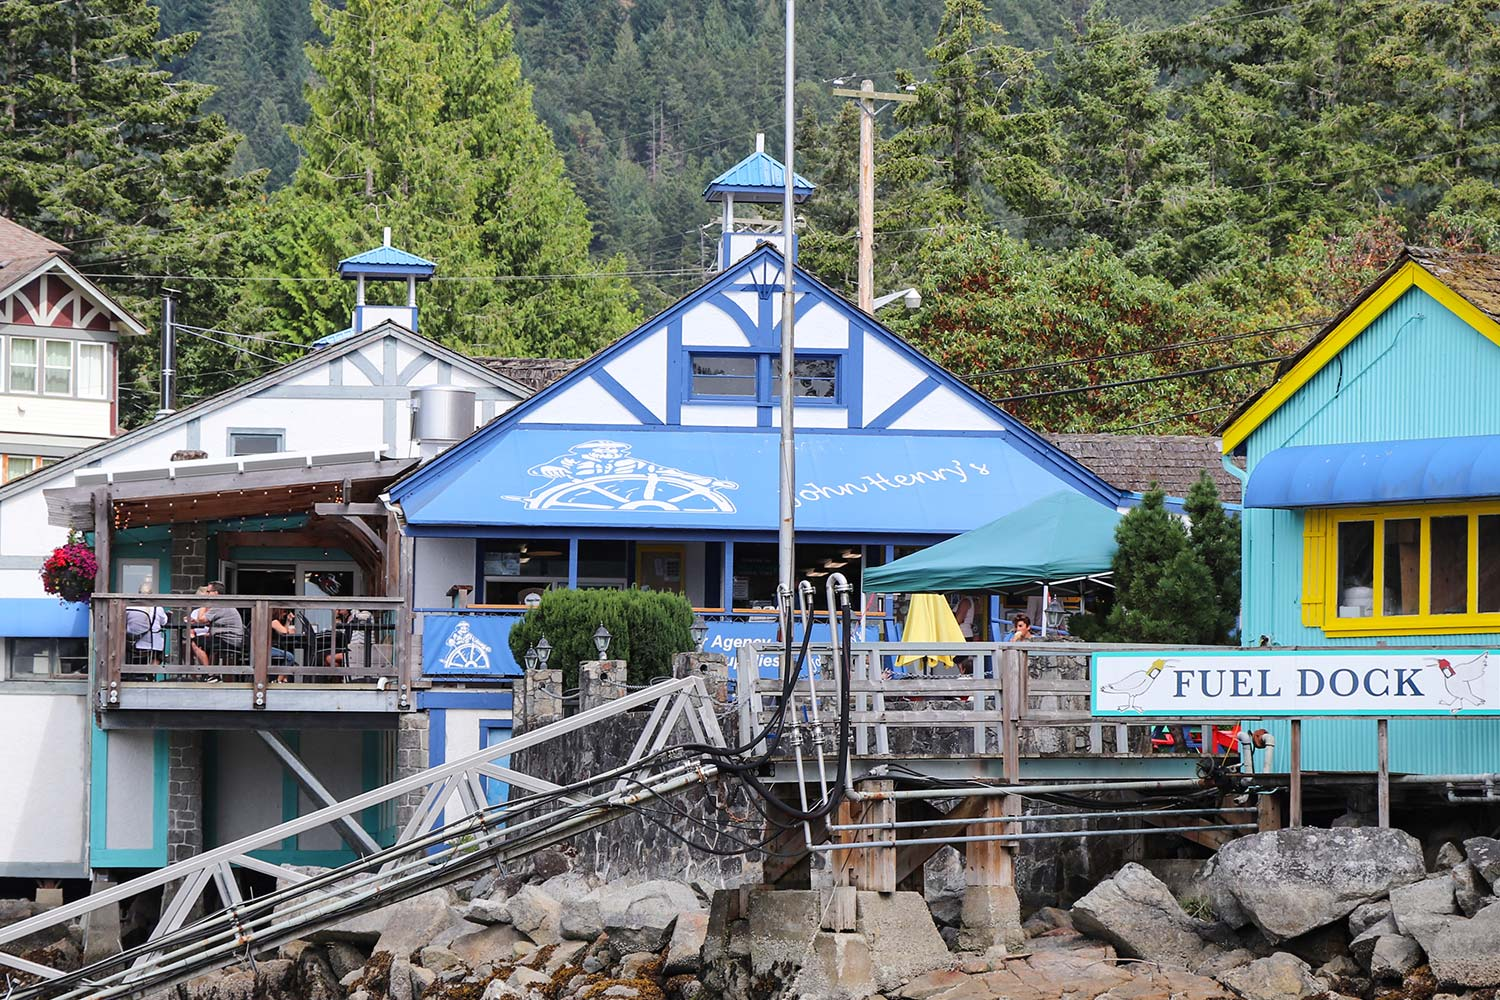 A view of John Henry's General Store & Cafe from the Marina Fuel Dock.